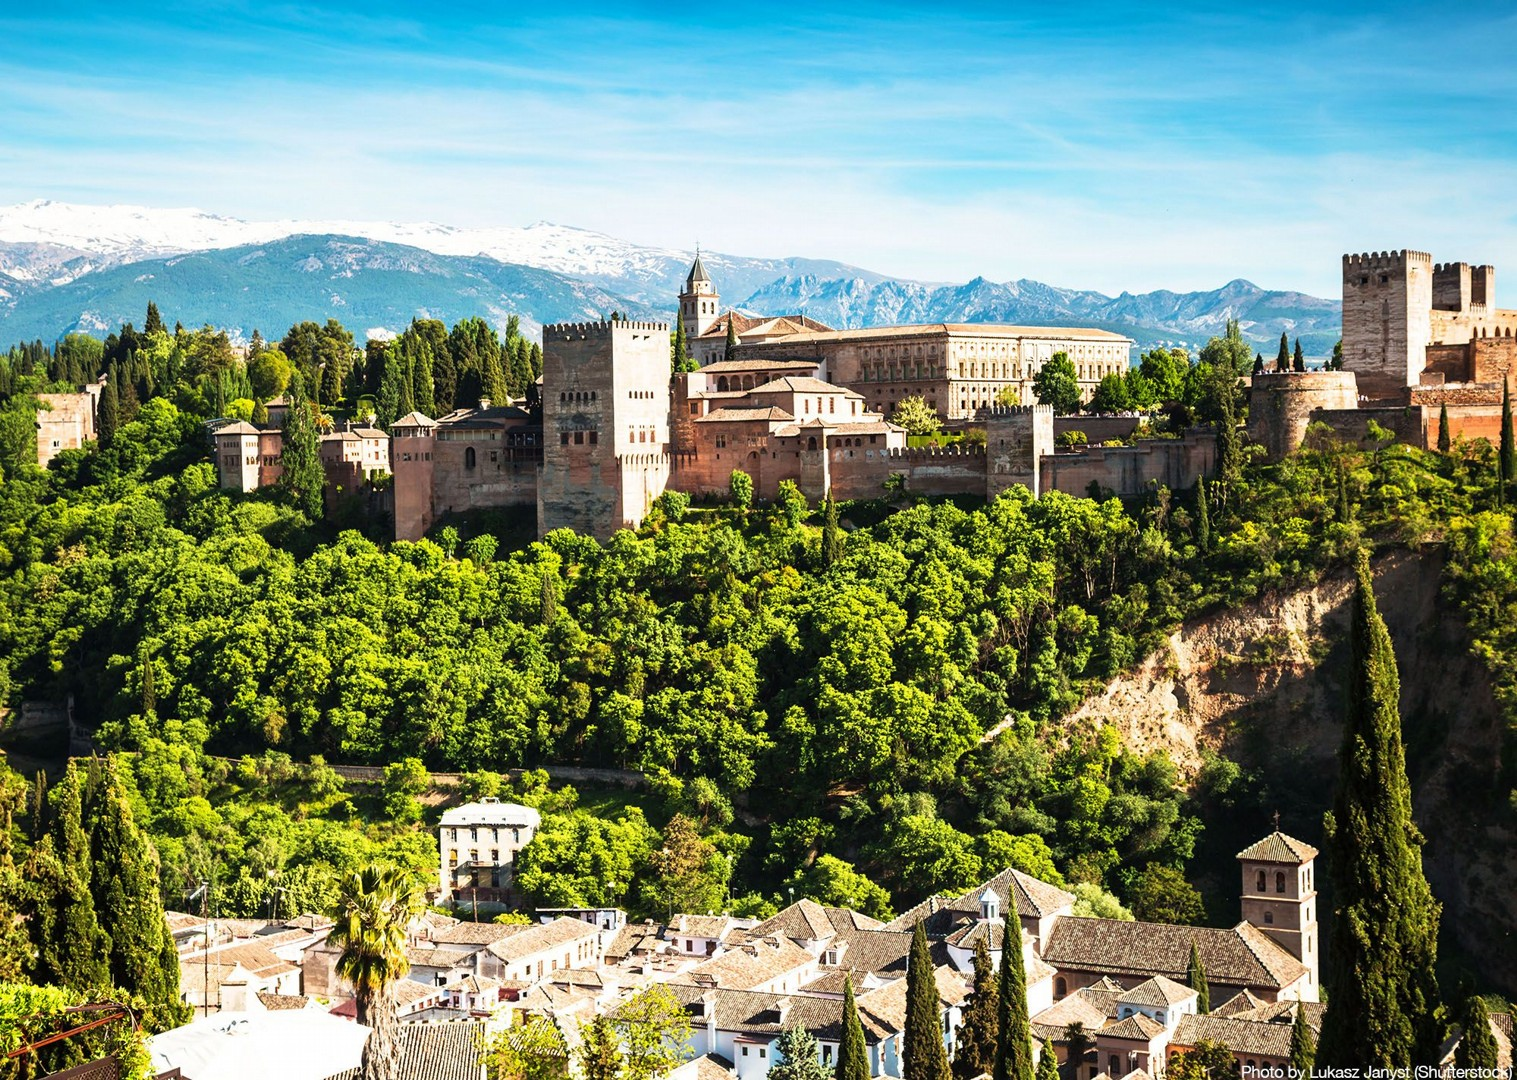 alhmabra-granada-to-seville-guided-leisure-cycling-holiday-in-spain.jpg - Southern Spain - Granada to Seville - Guided Leisure Cycling Holiday - Leisure Cycling